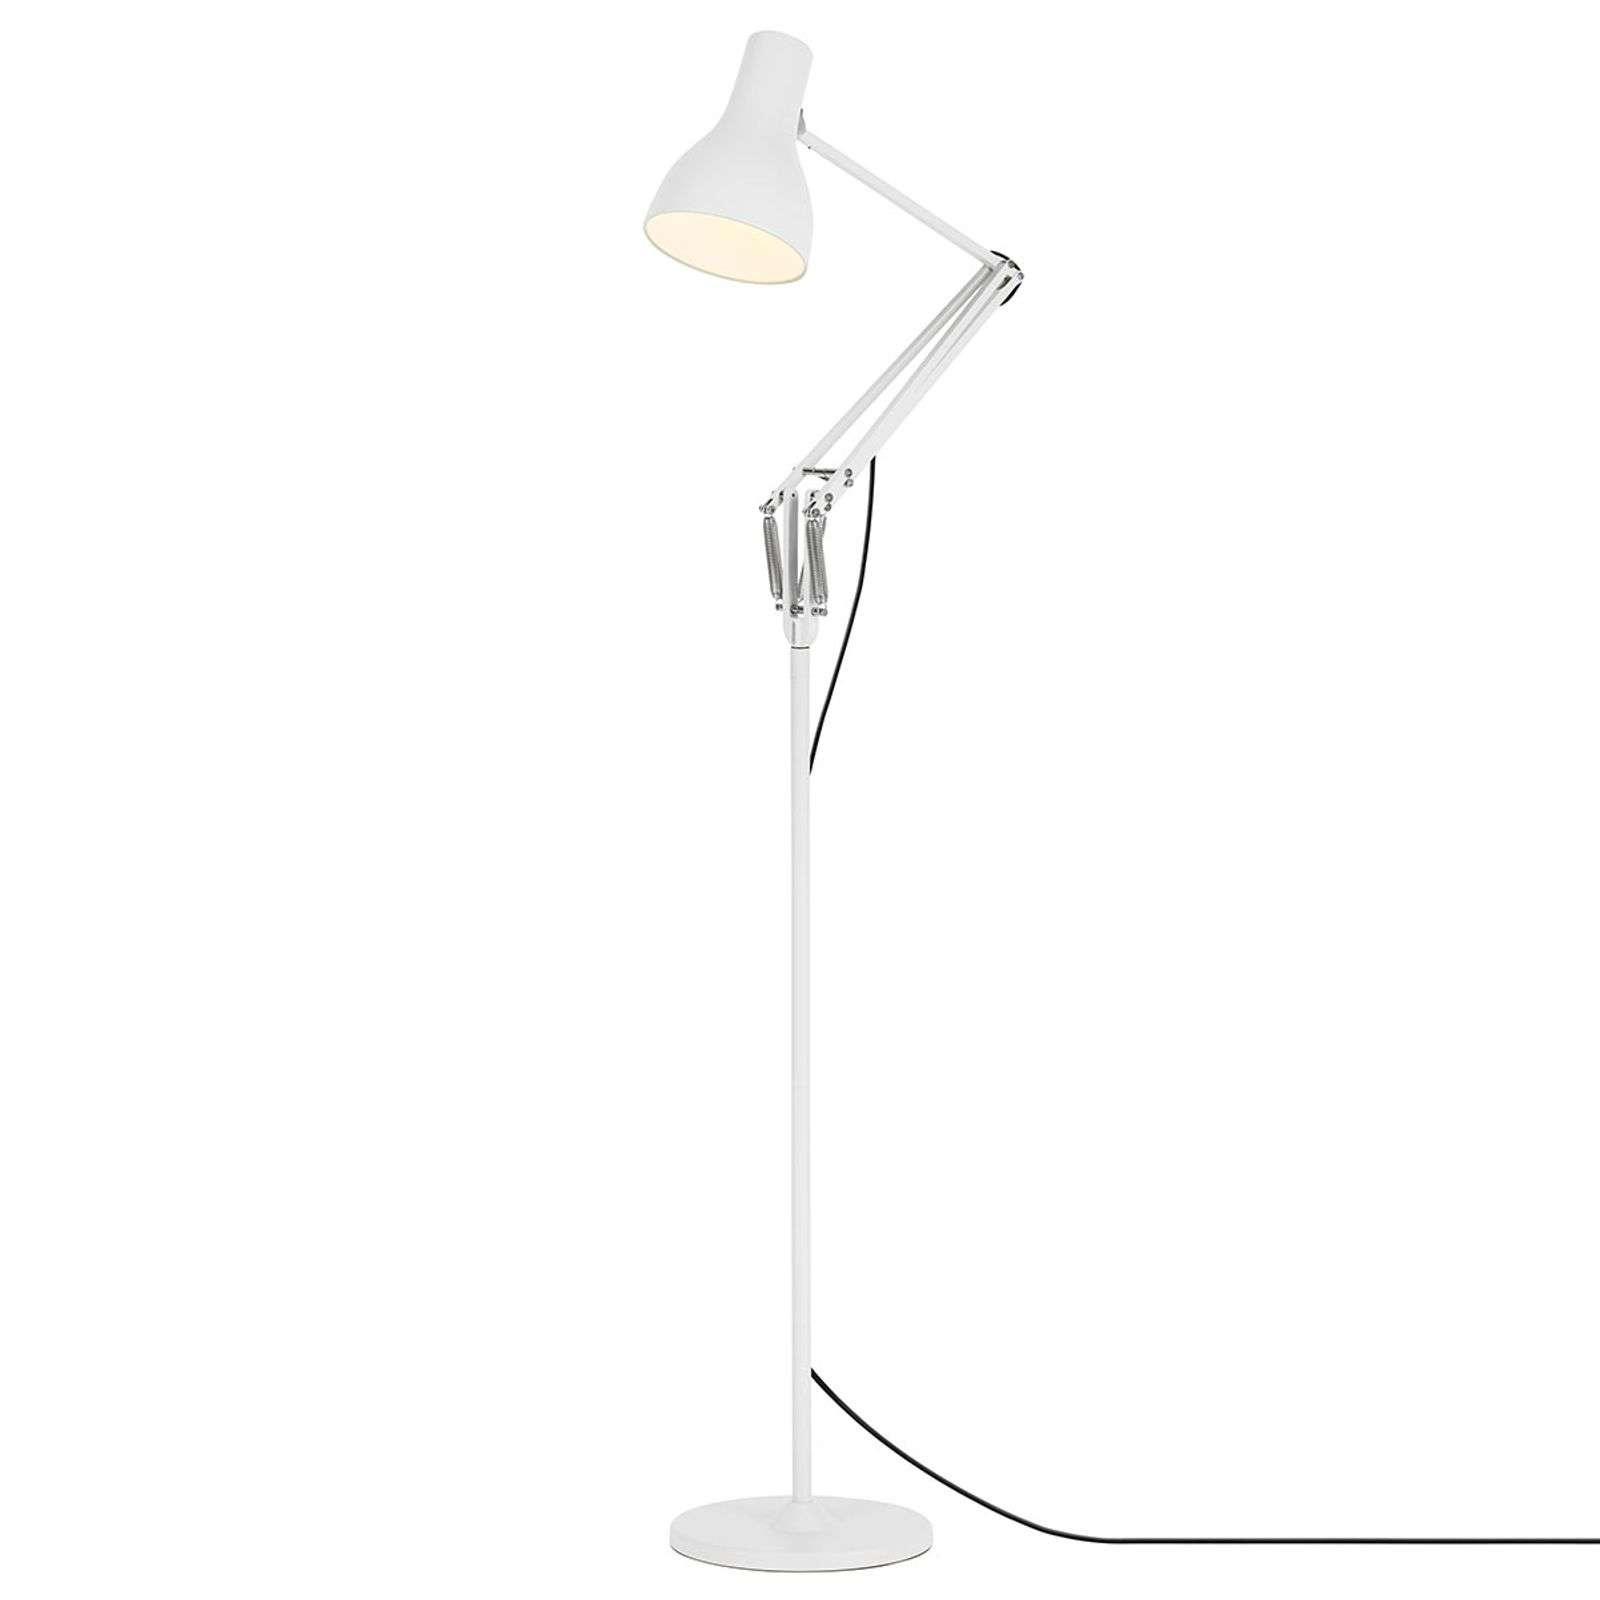 Anglepoise Type 75 vloerlamp alpenwit